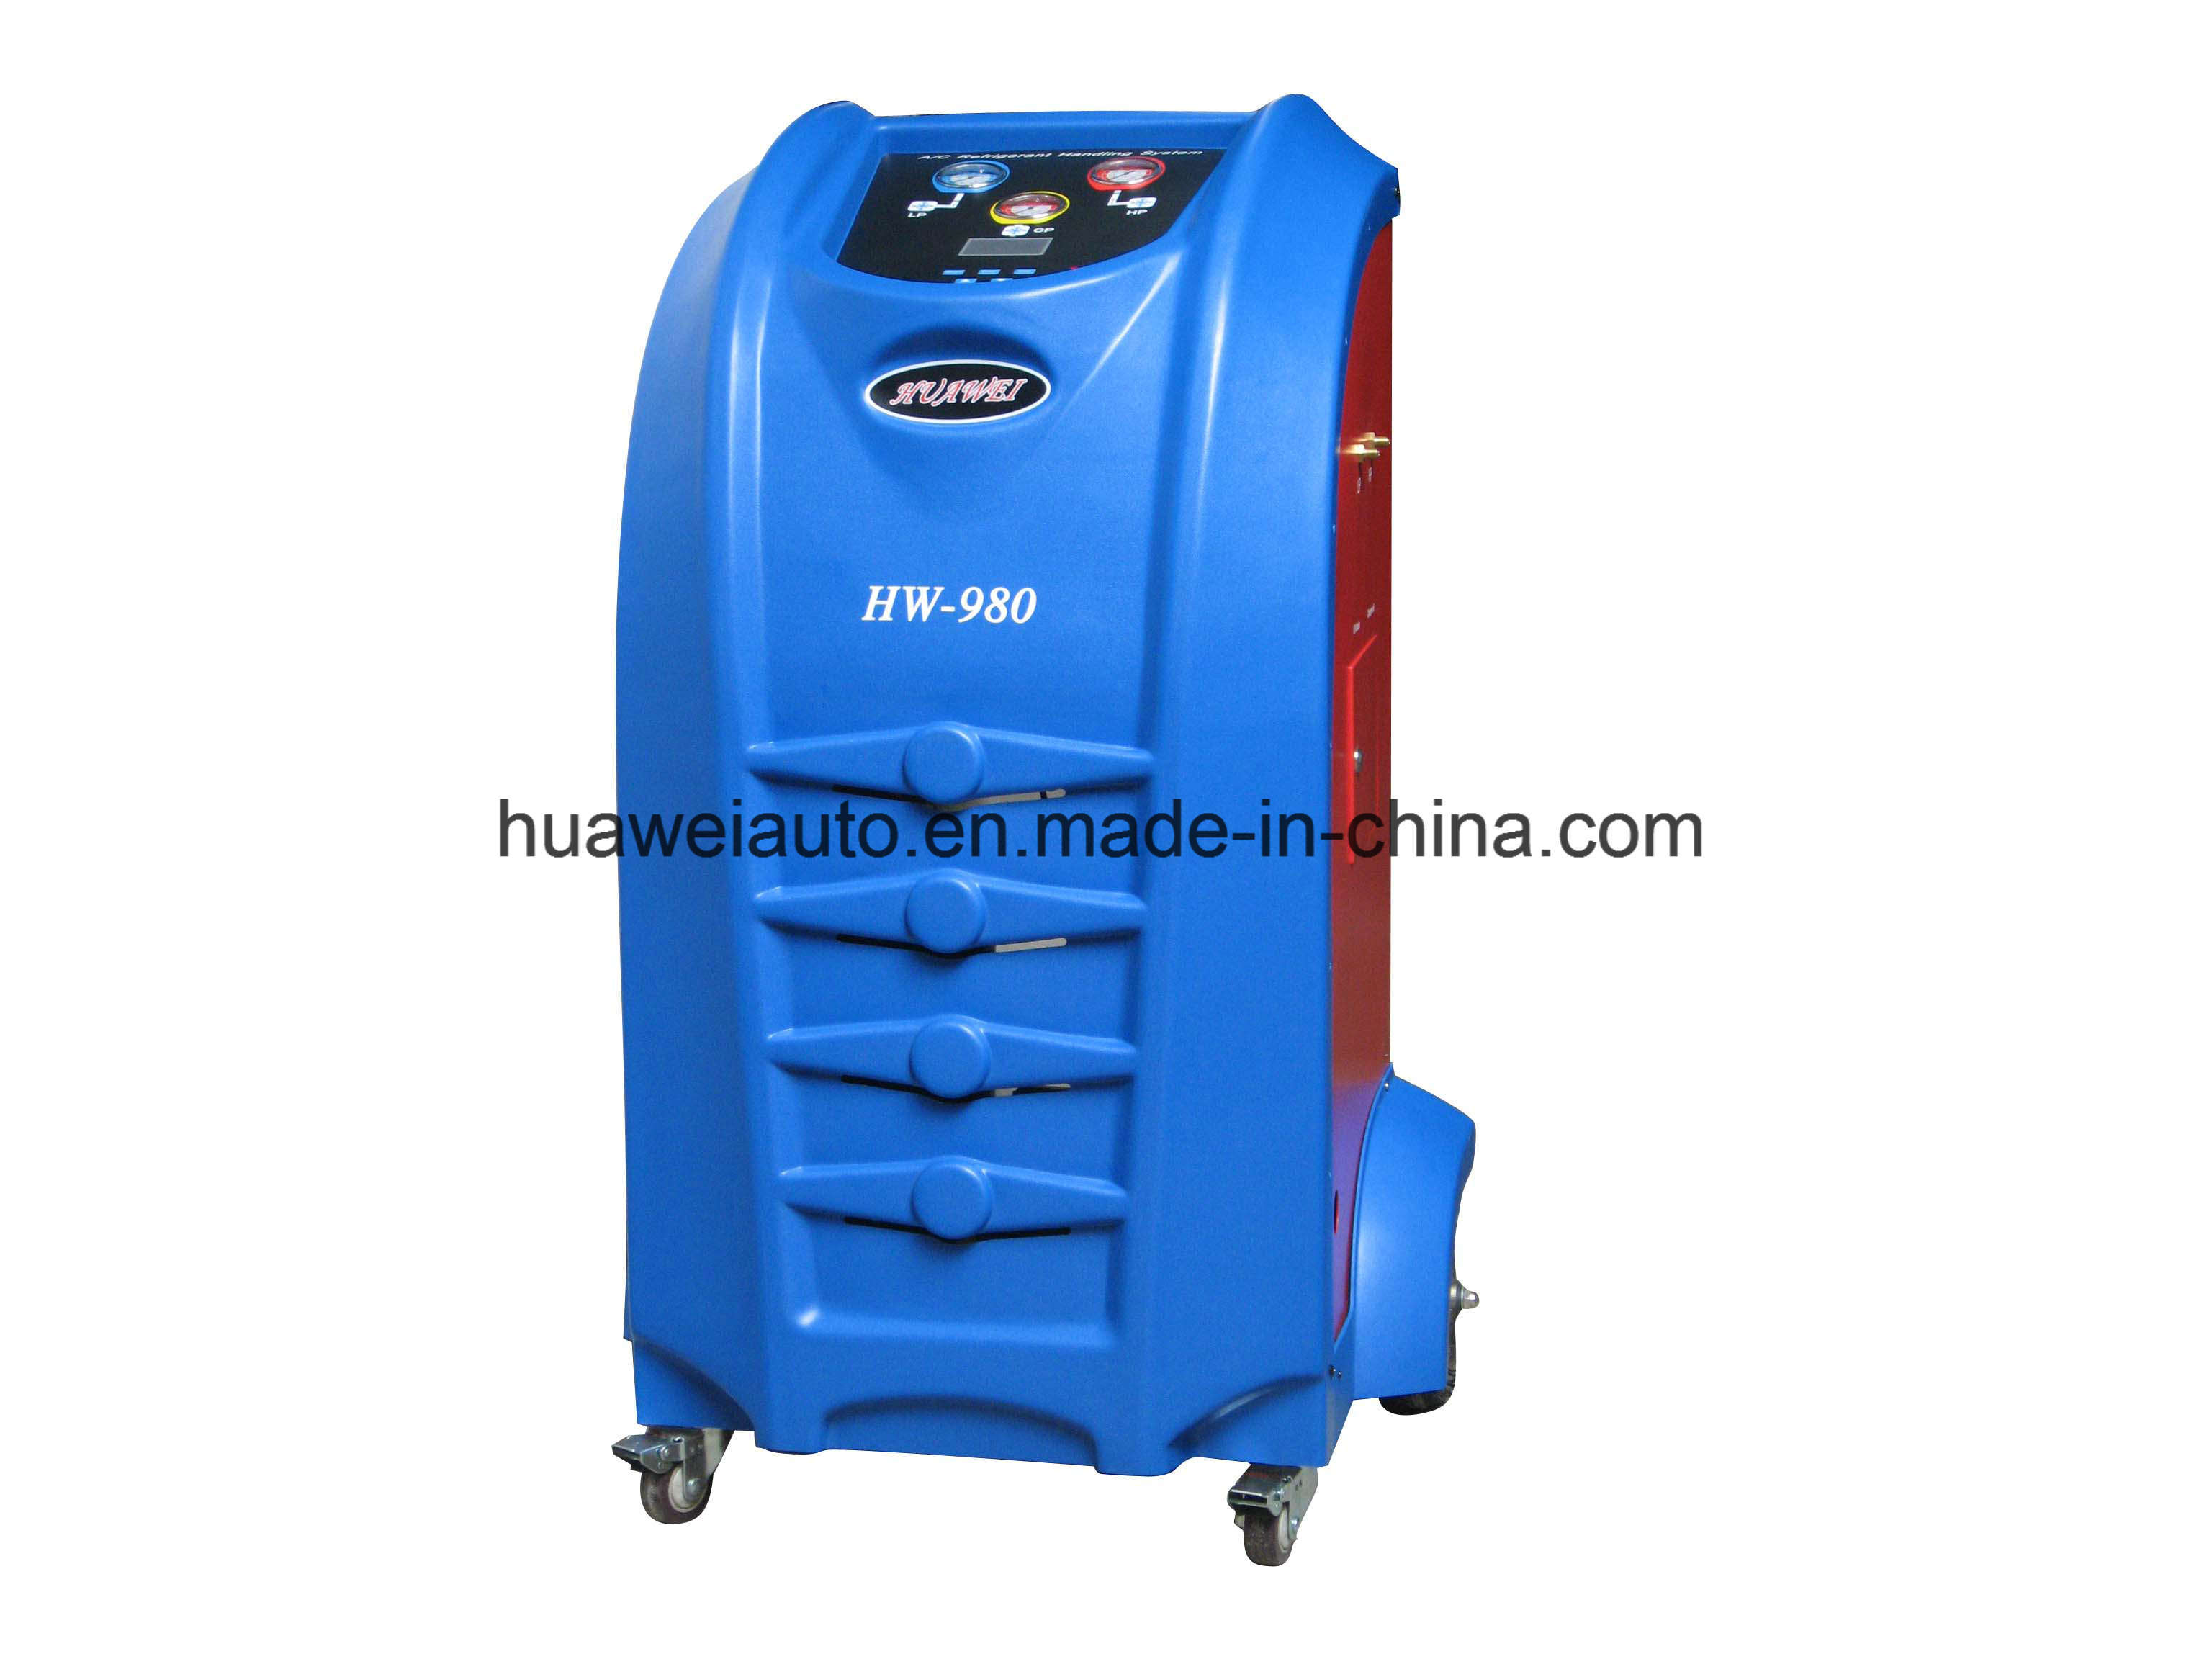 Cheap Price Full Automatically Charging & Refrigerant Recovery Machine